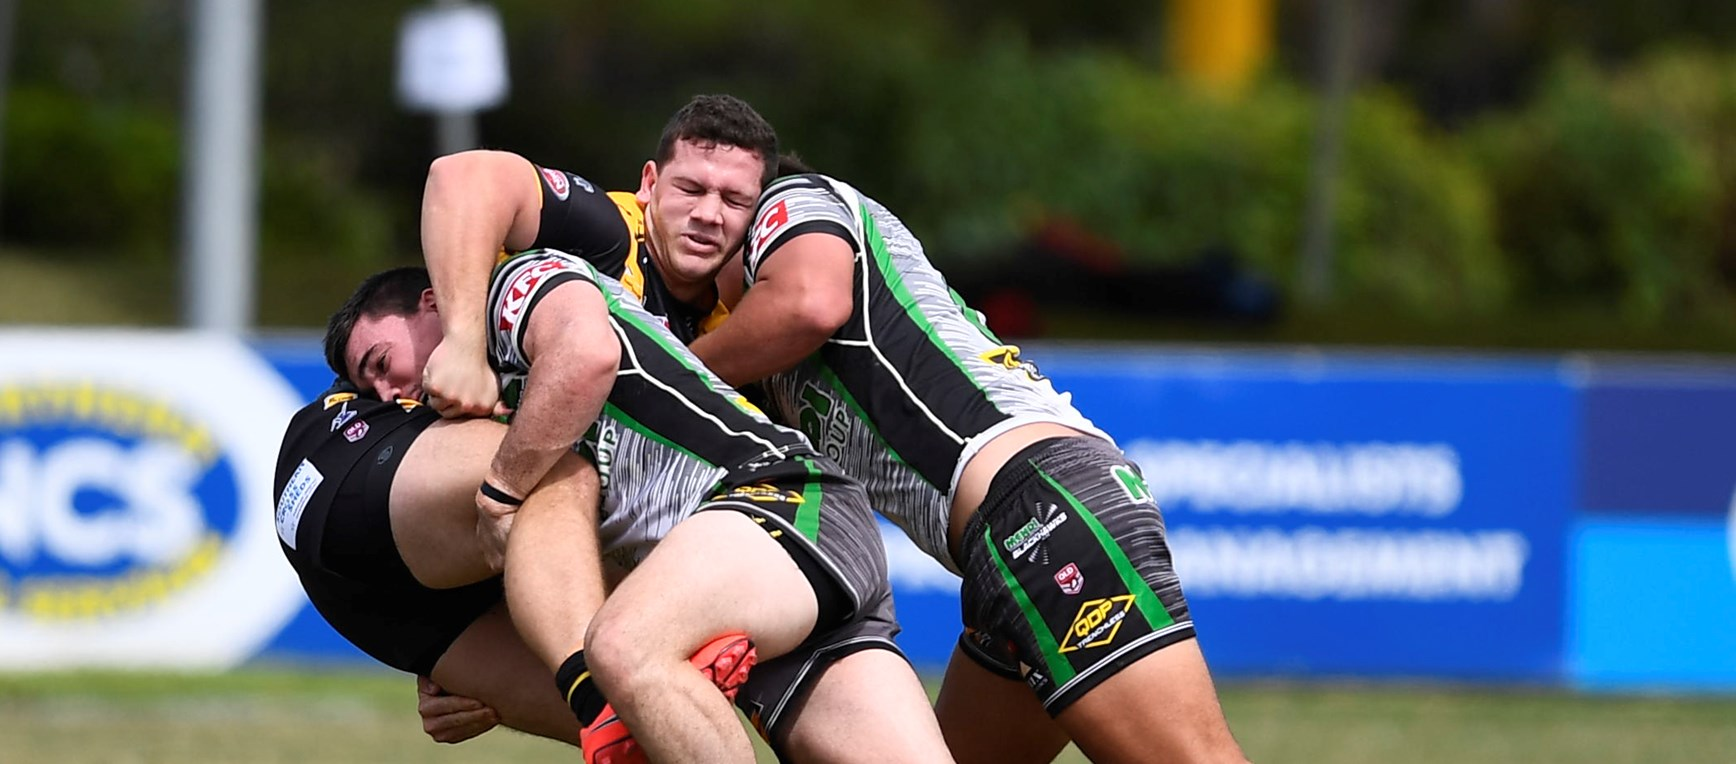 In pictures: Townsville and Falcons face off in close match